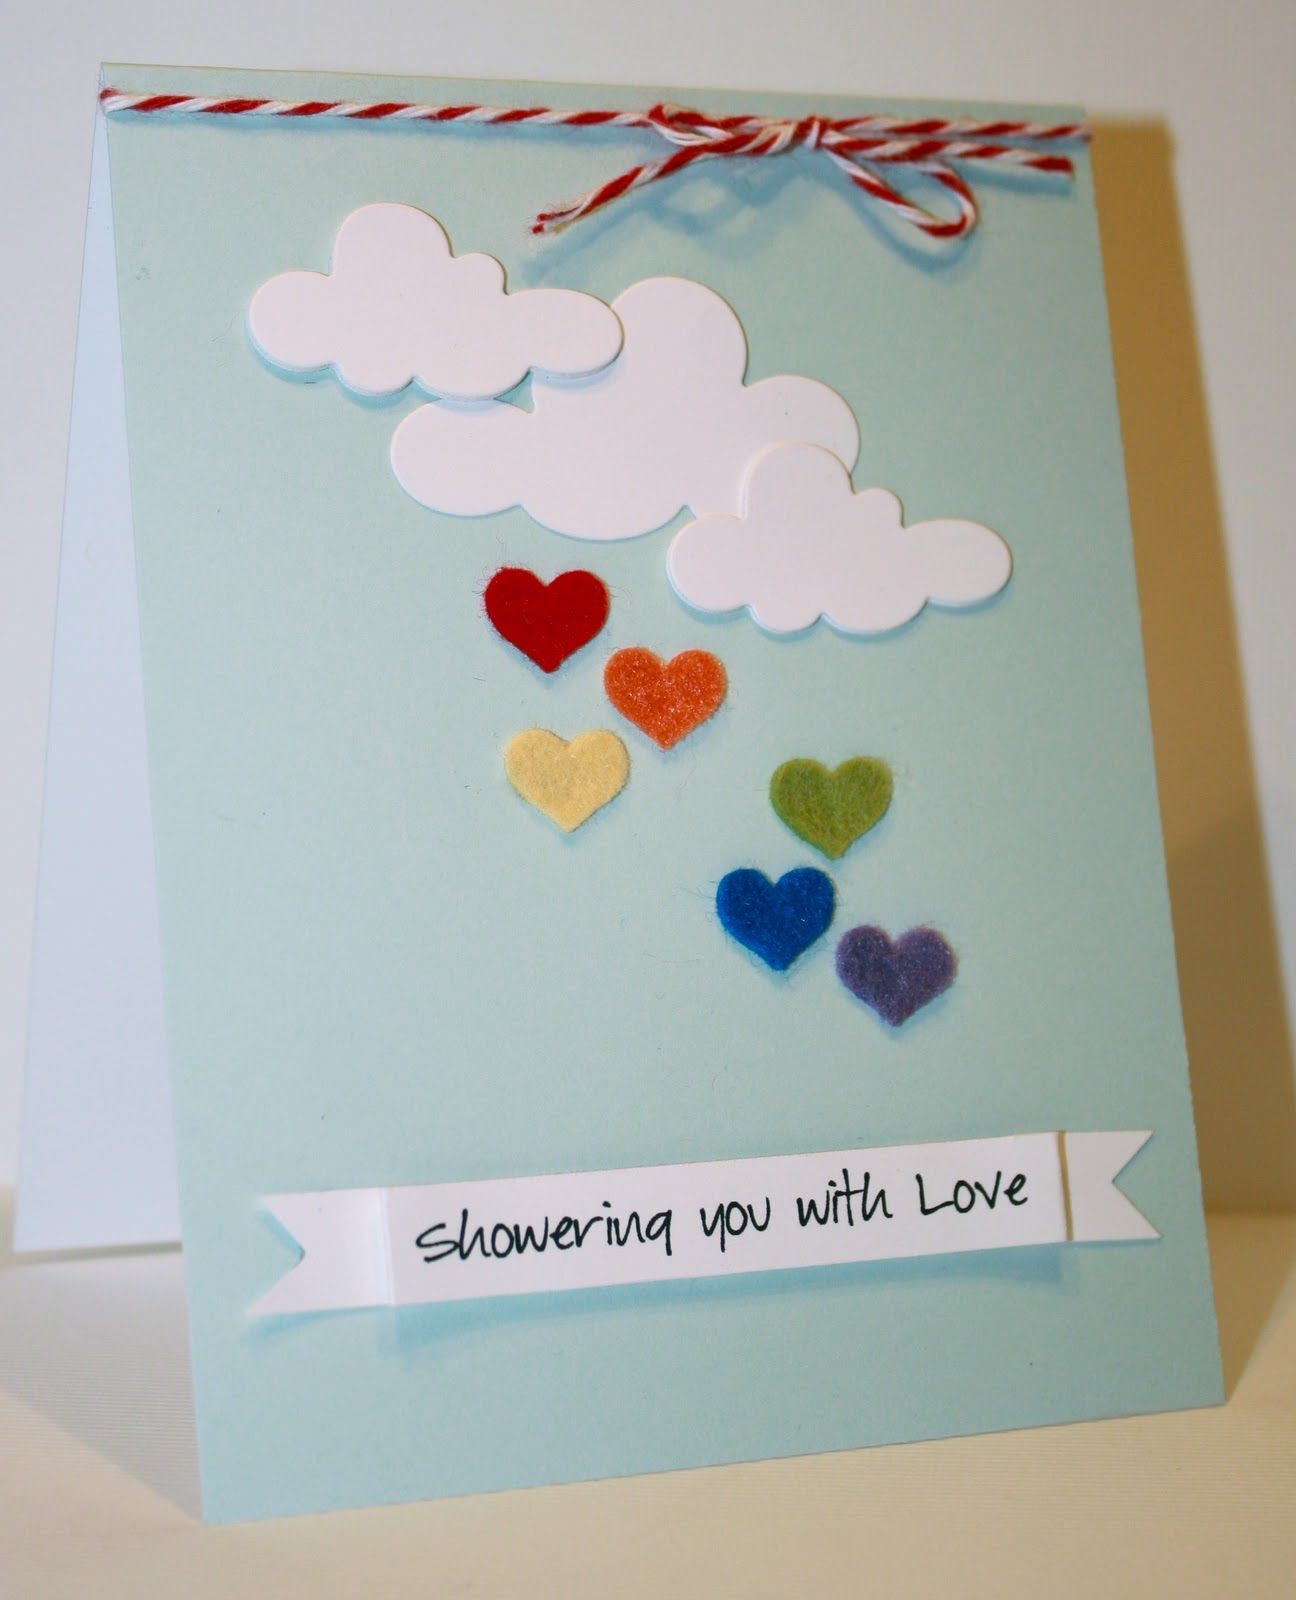 card making, Image Search | Ask.com